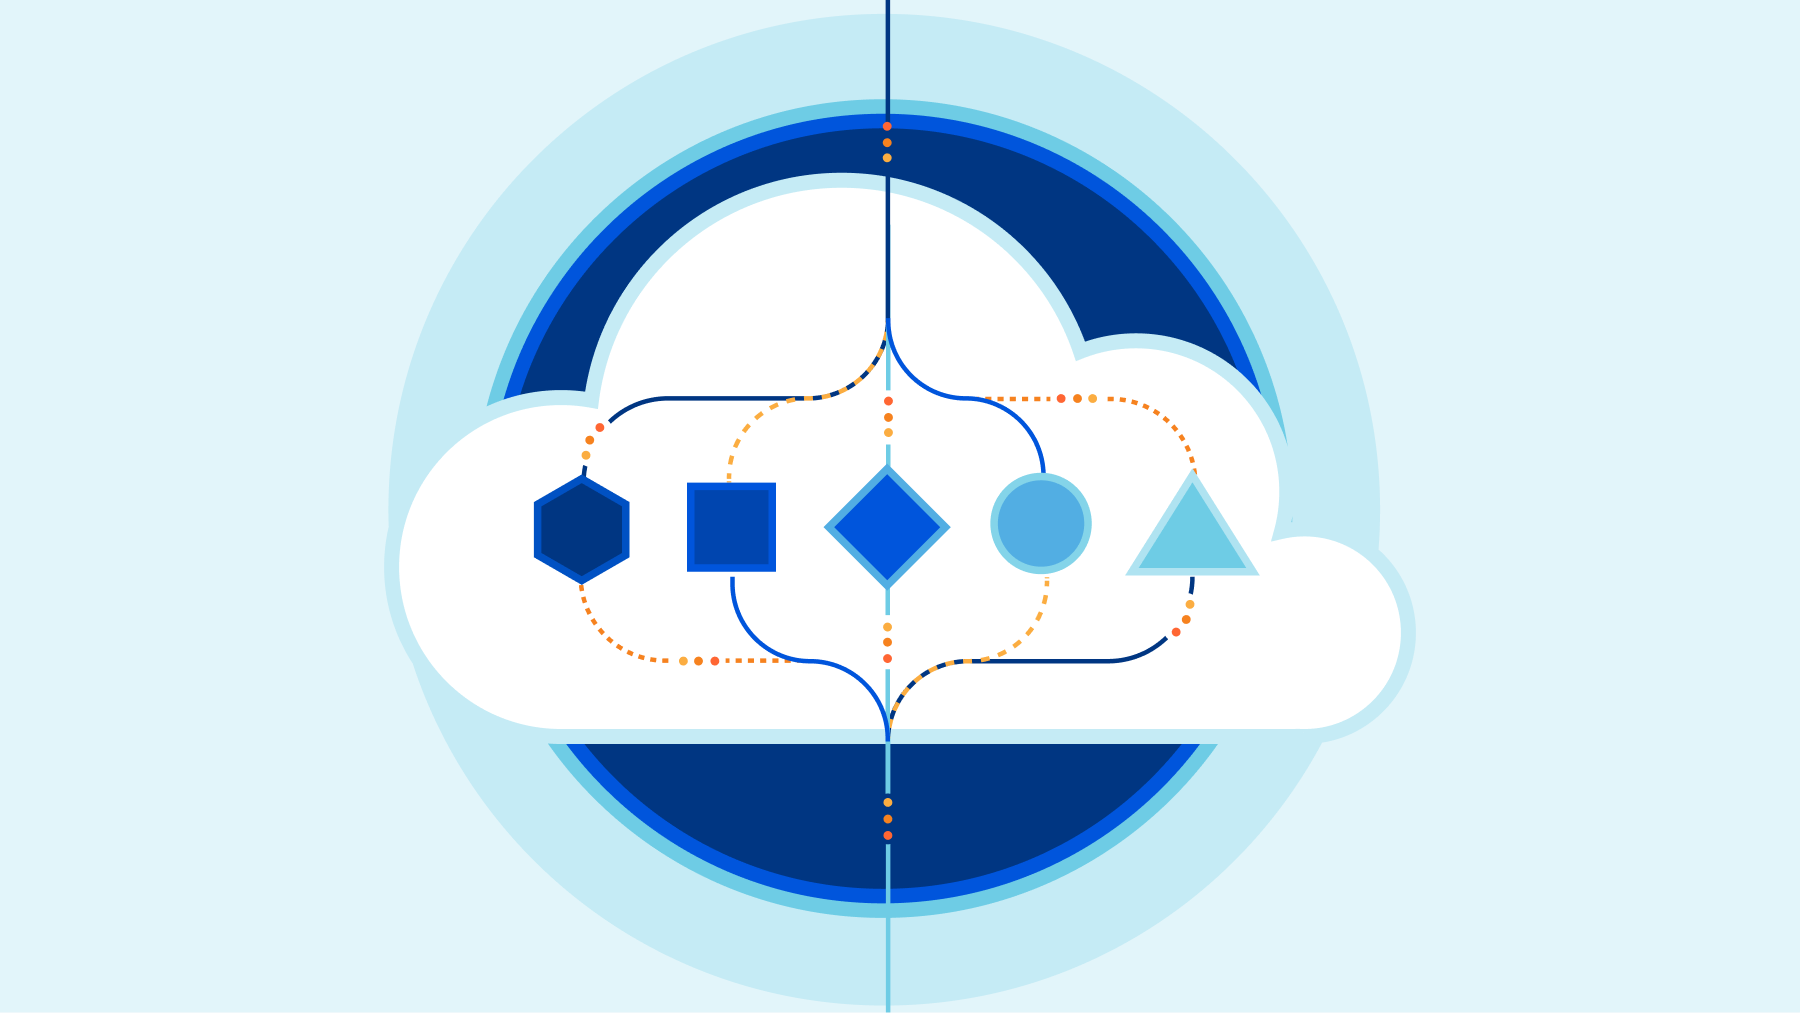 Announcing Cloudflare R2 Storage: Rapid and Reliable Object Storage, minus the egress fees